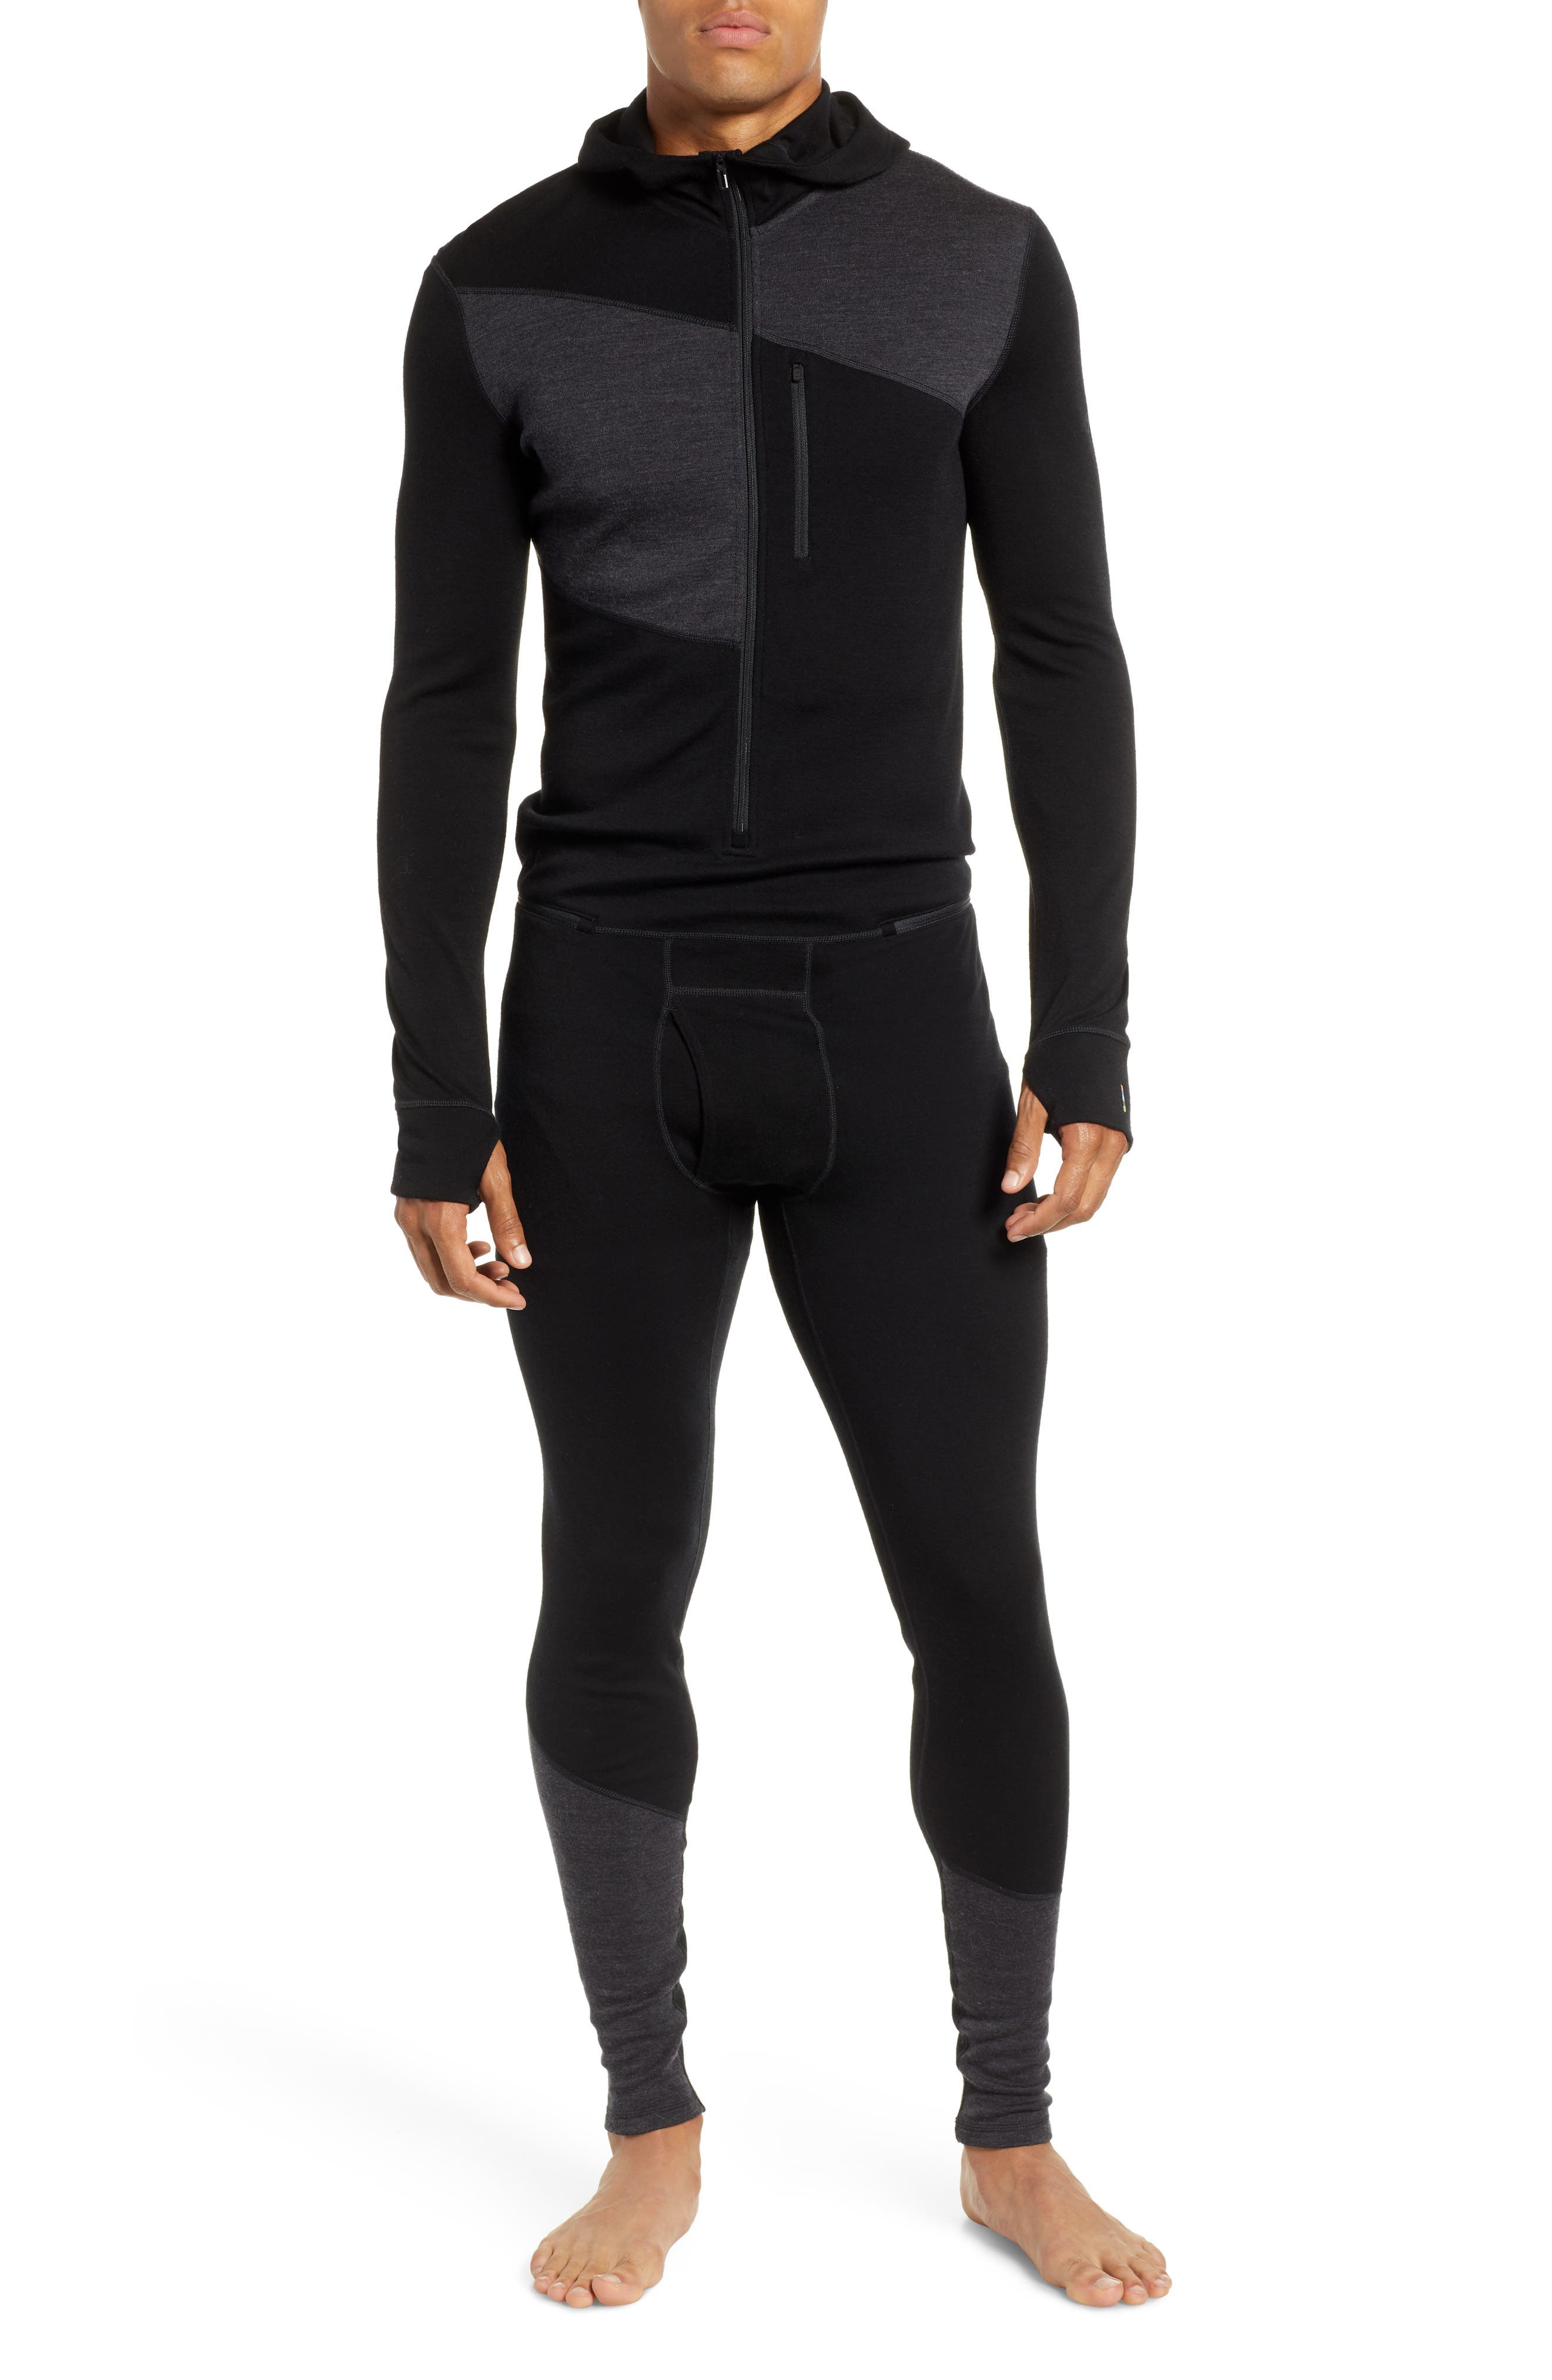 SMARTWOOL,                             Merino 250 Hooded One-Piece Base Layer,                             Main thumbnail 1, color,                             CHARCOAL/ BLACK